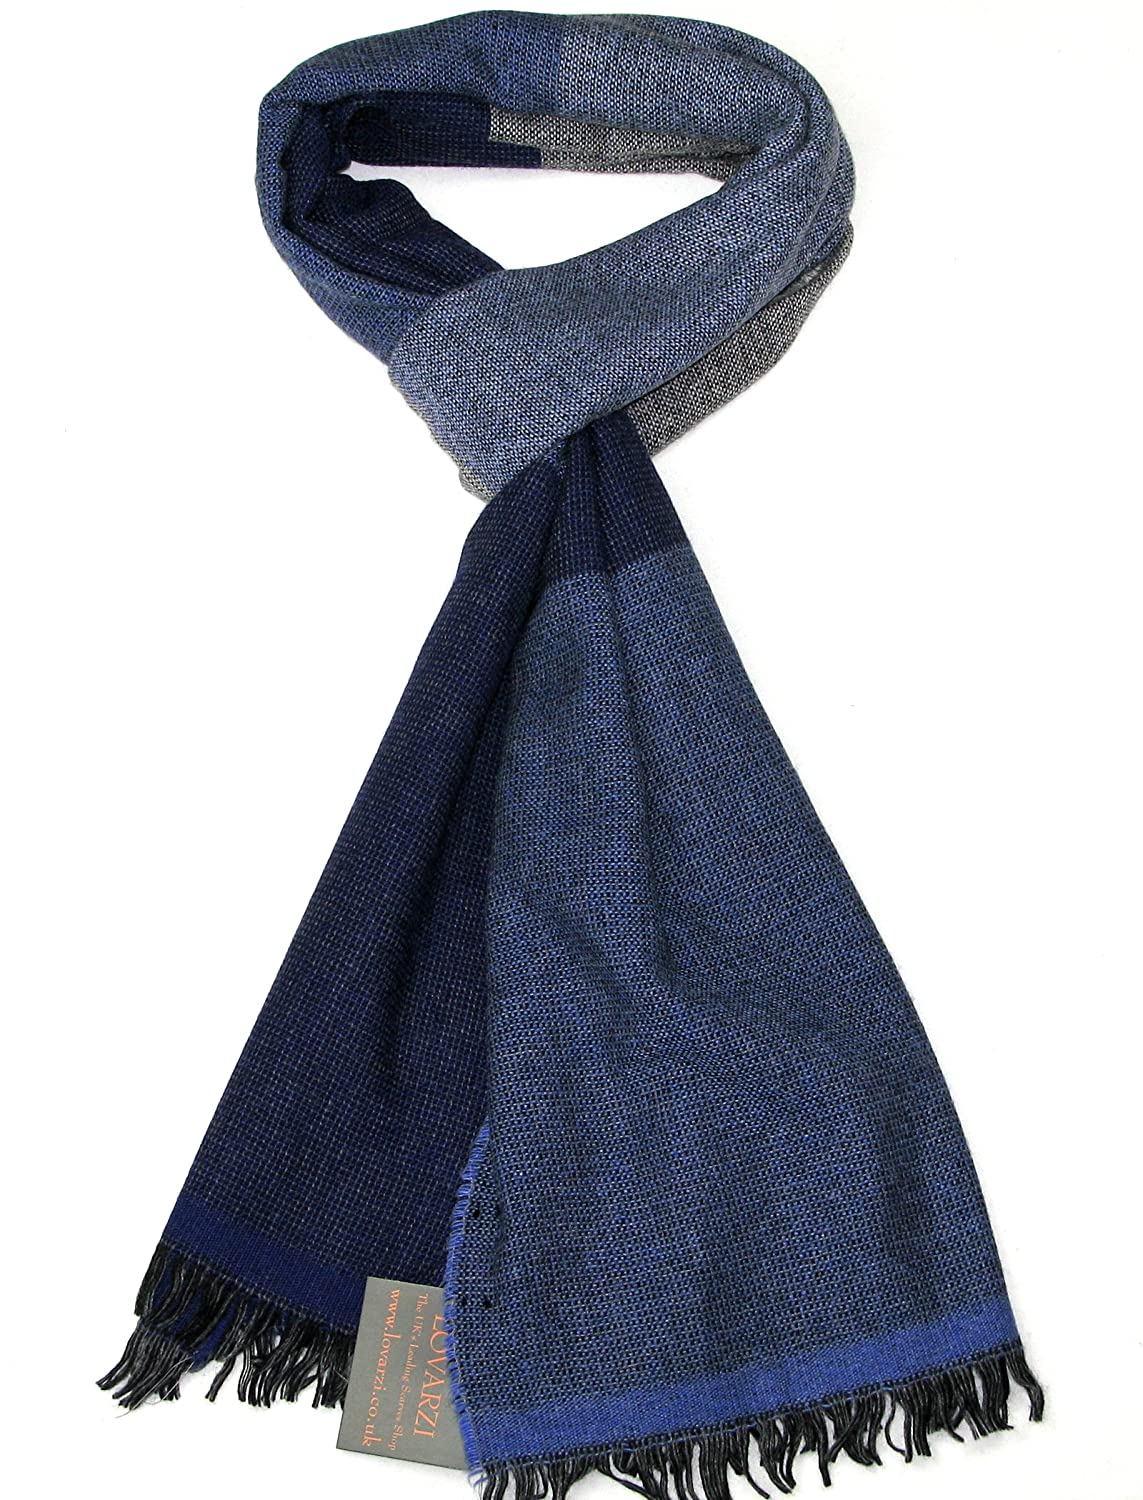 95cc181b385ee Mens Scarves Brown - Lovarzi Wool Winter Scarf for Men - Striped Warm and Soft  Scarves - Gifts: Amazon.co.uk: Clothing